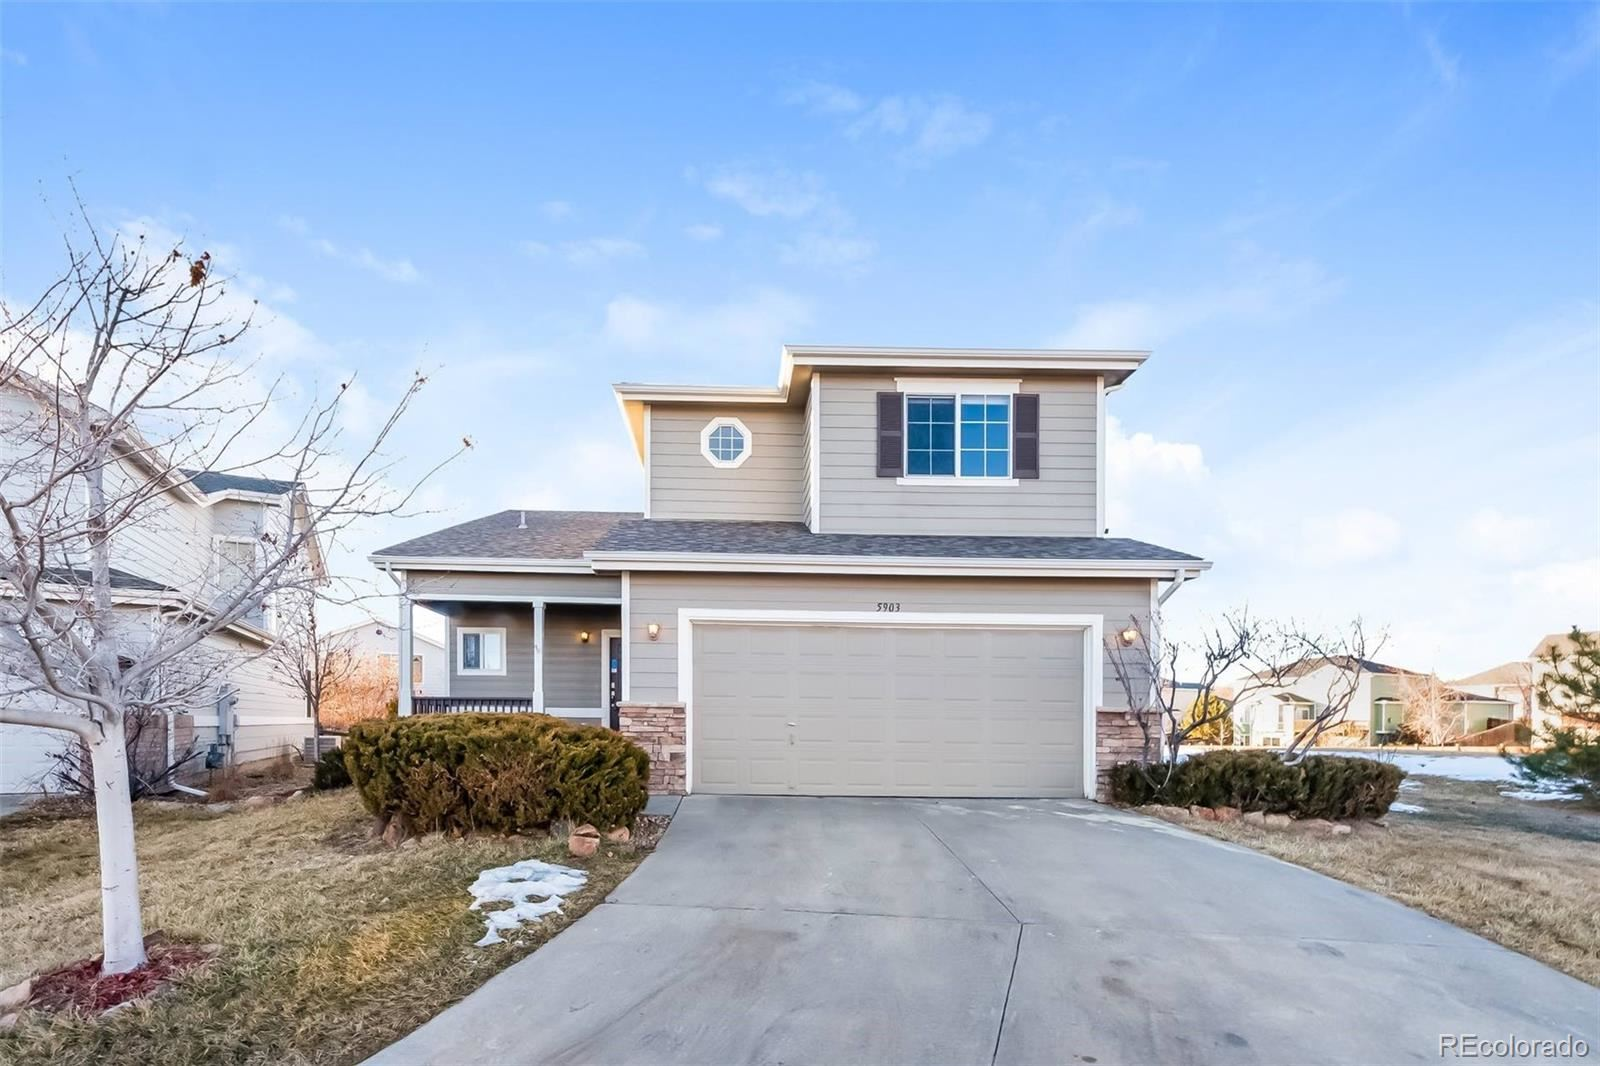 5903 S Waco Court, Aurora, CO 80016 - #: 7064539